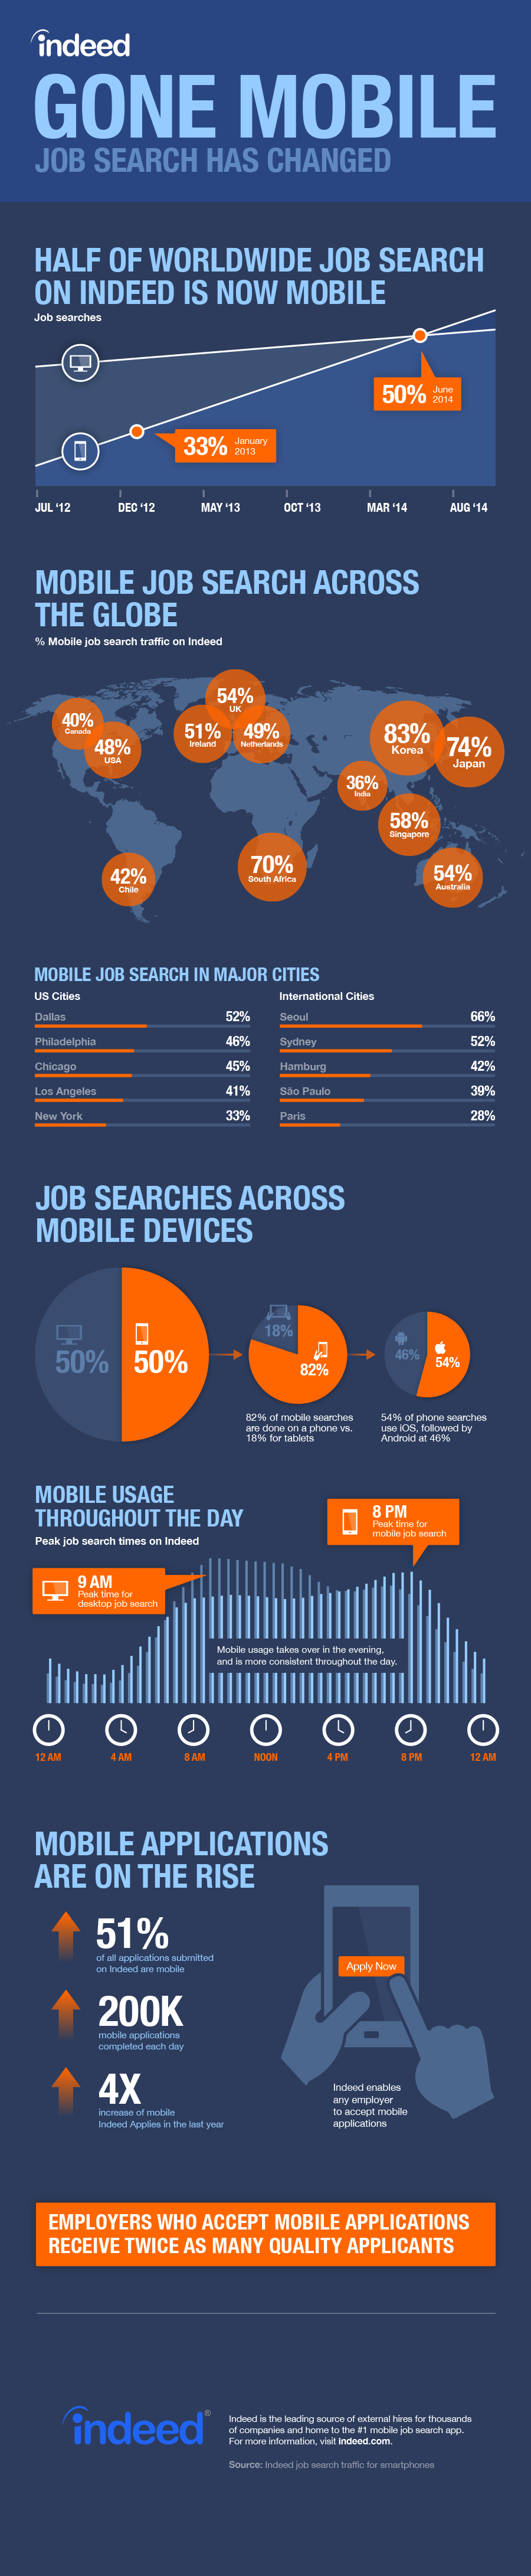 [INFOGRAPHIC] Job Search Has Gone Mobile